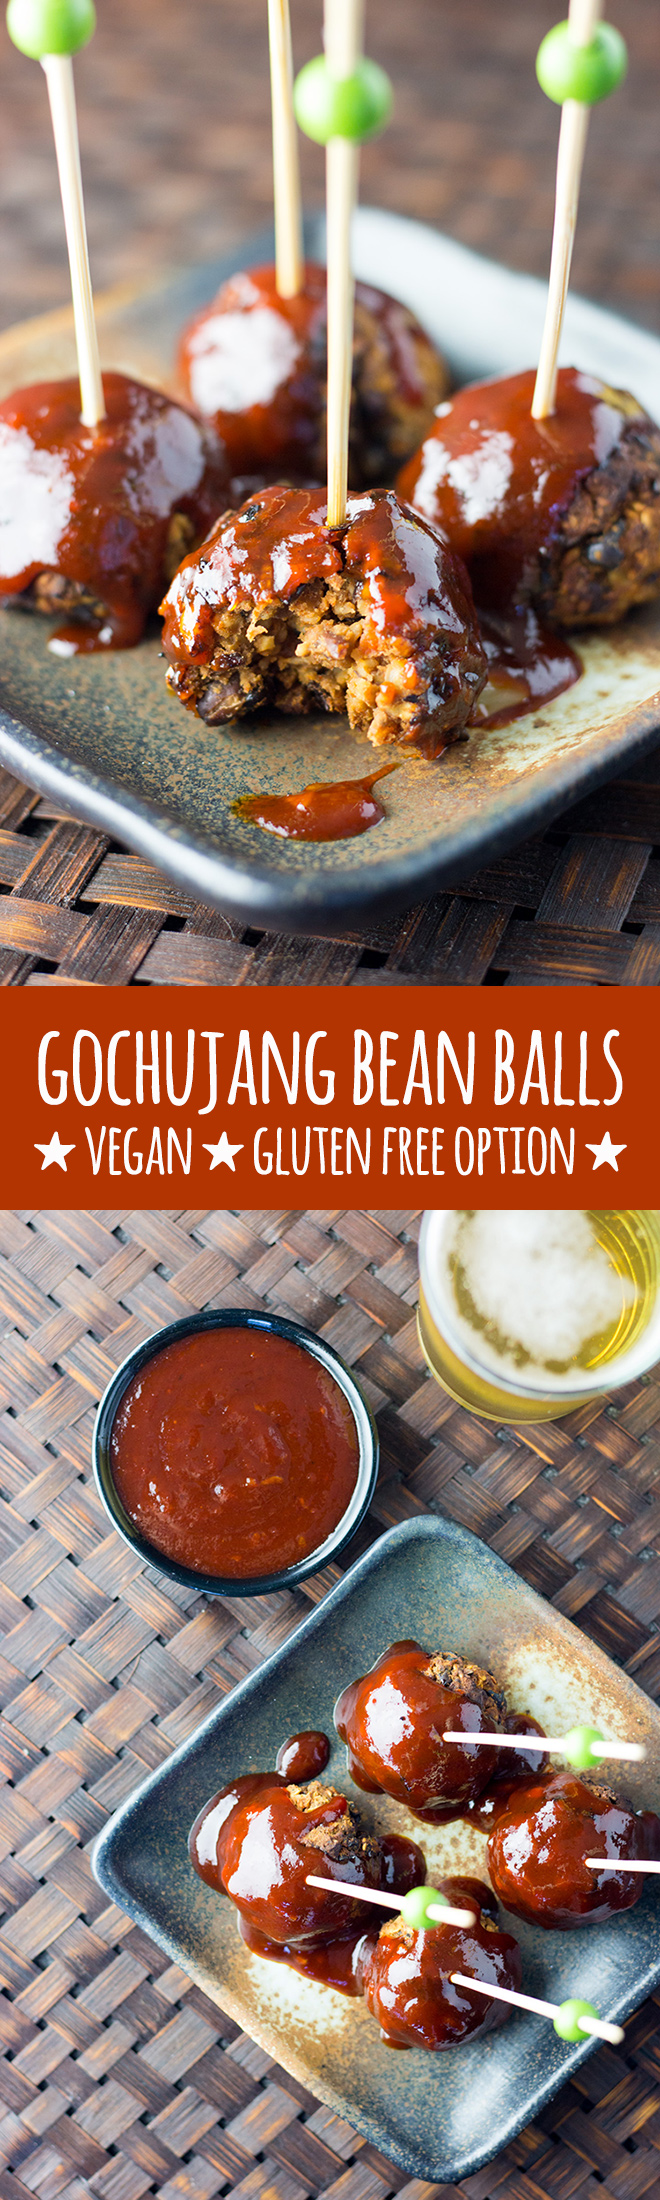 Gochujang is the star of the show in this full on, flavour packed, Korean style take on vegan meat balls.